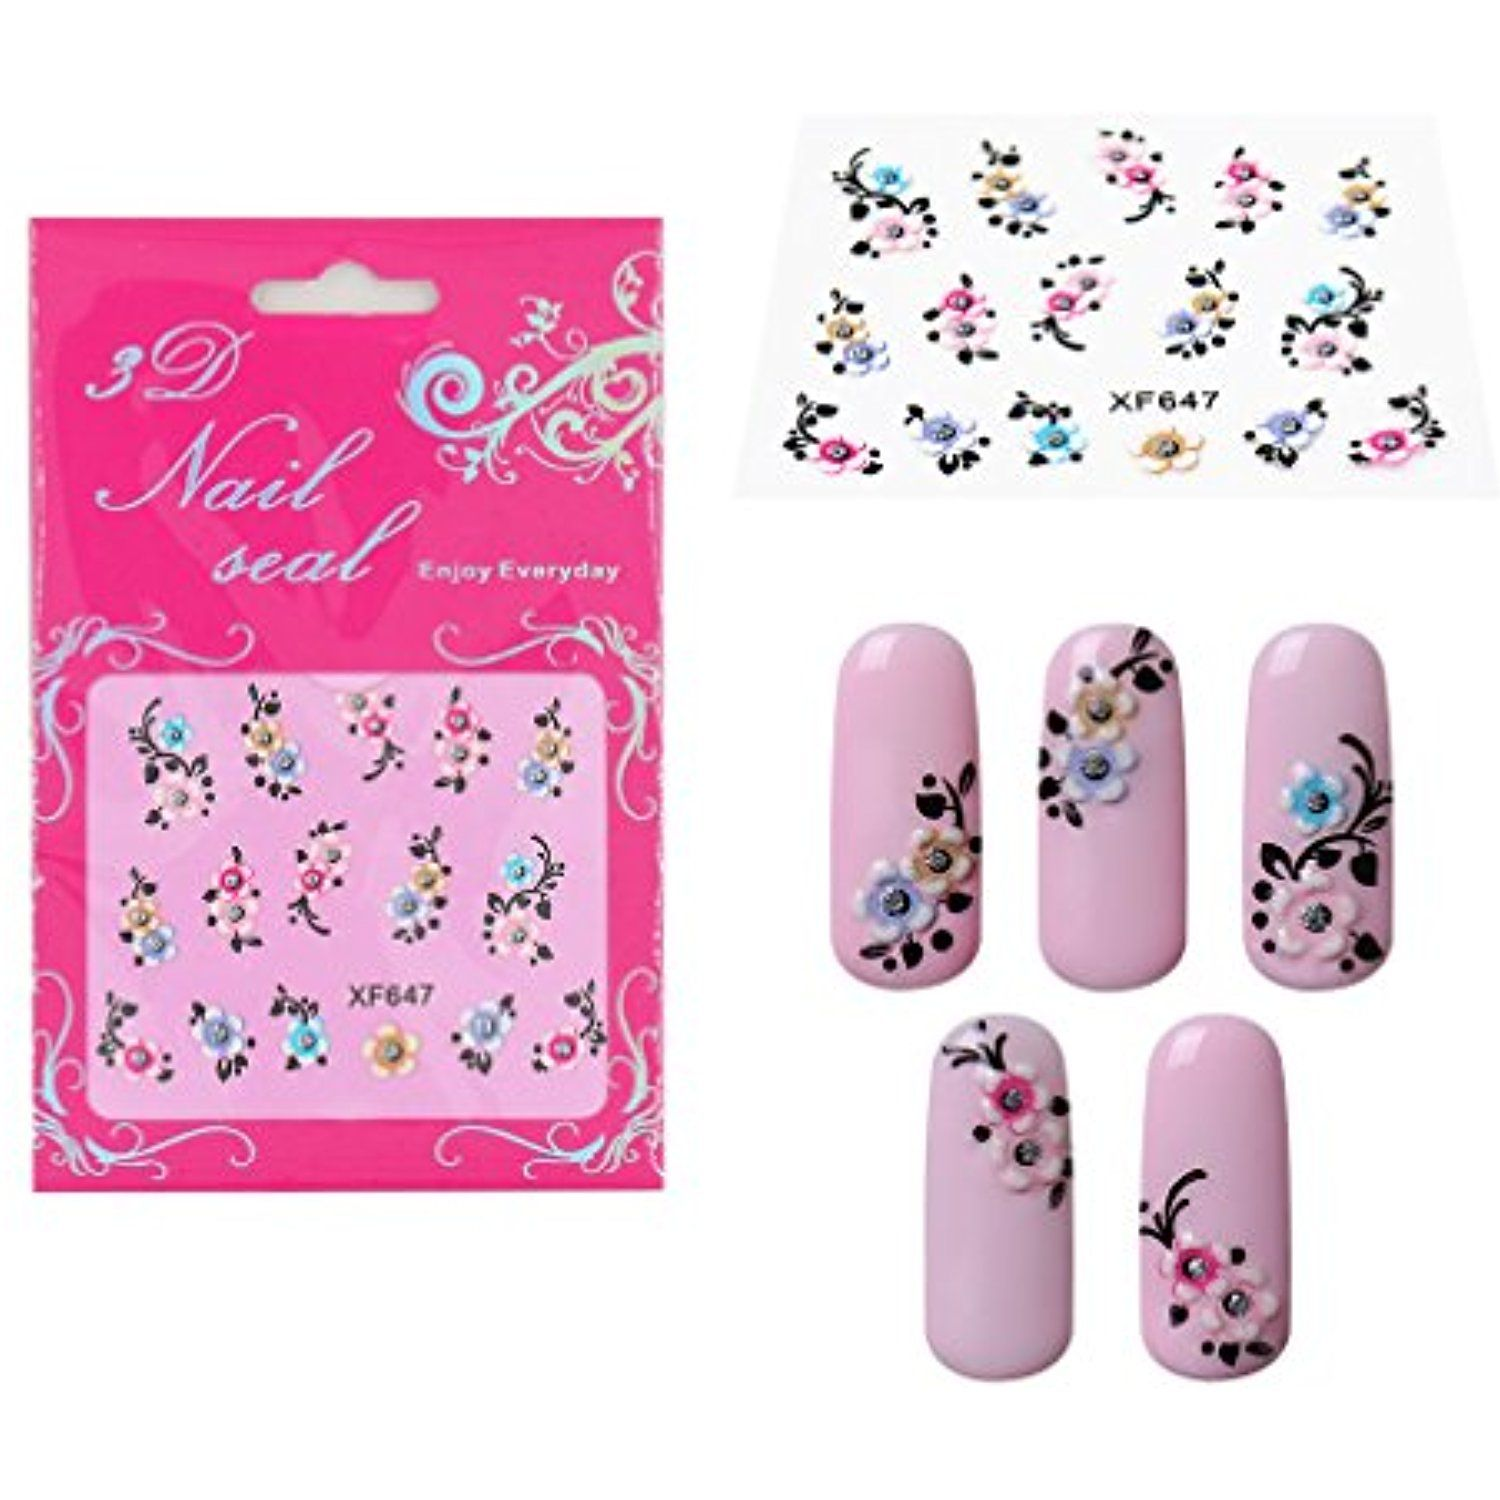 Elite99 3D Design Nail Art Stickers with Rhinestones Collection Tip ...